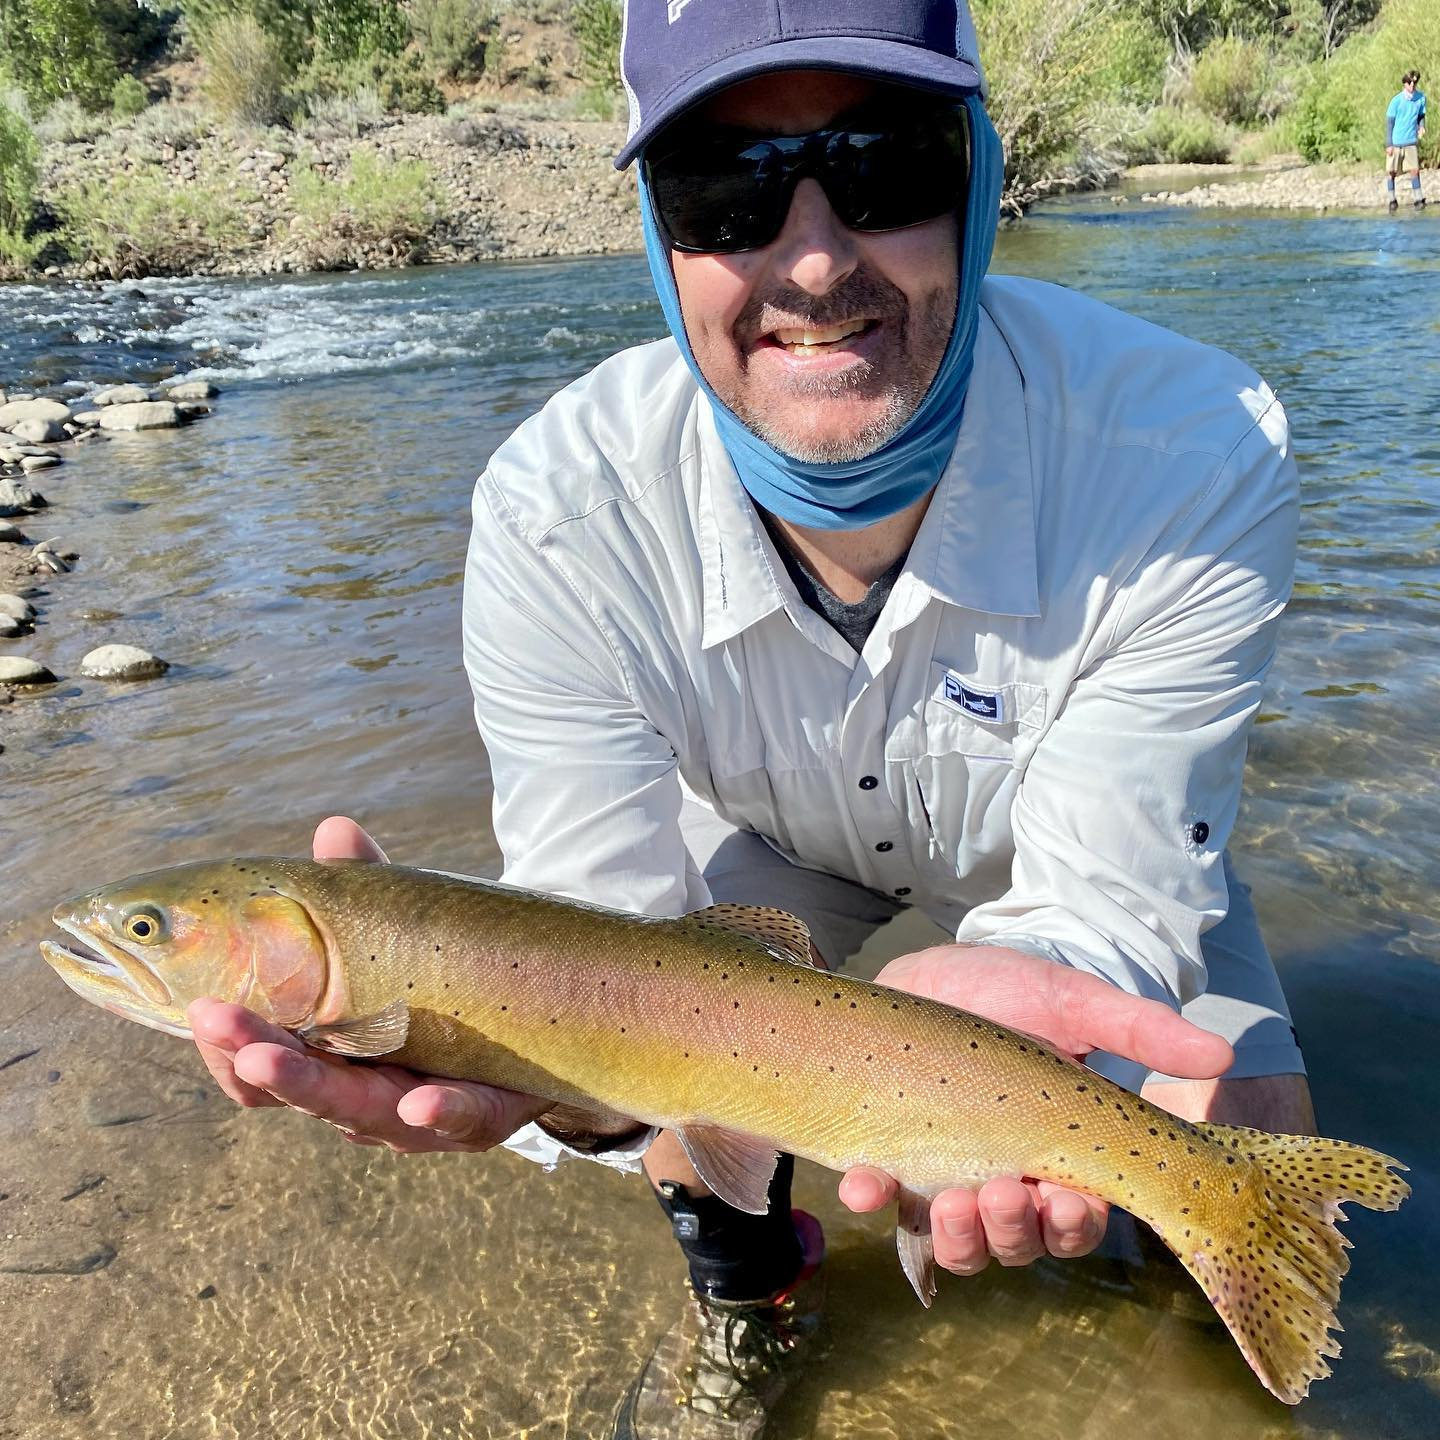 Fishing is still really good in the AM's . Water temps are hanging in there on our local rivers and streams . That being said we are only running AM 1/2 days as to not stress the fish as temps rise in the afternoon and evening. Please carry a thermometer with you and continue to check the water temps . When it hits 66 degrees , time to call it a day and let em rest …#scottflyrods #fishpond #catchandrelease #fishitwell #alpineflyfishing #alpinecounty #fishca #lahontancutthroattrout #getoutside #checkthetemperature